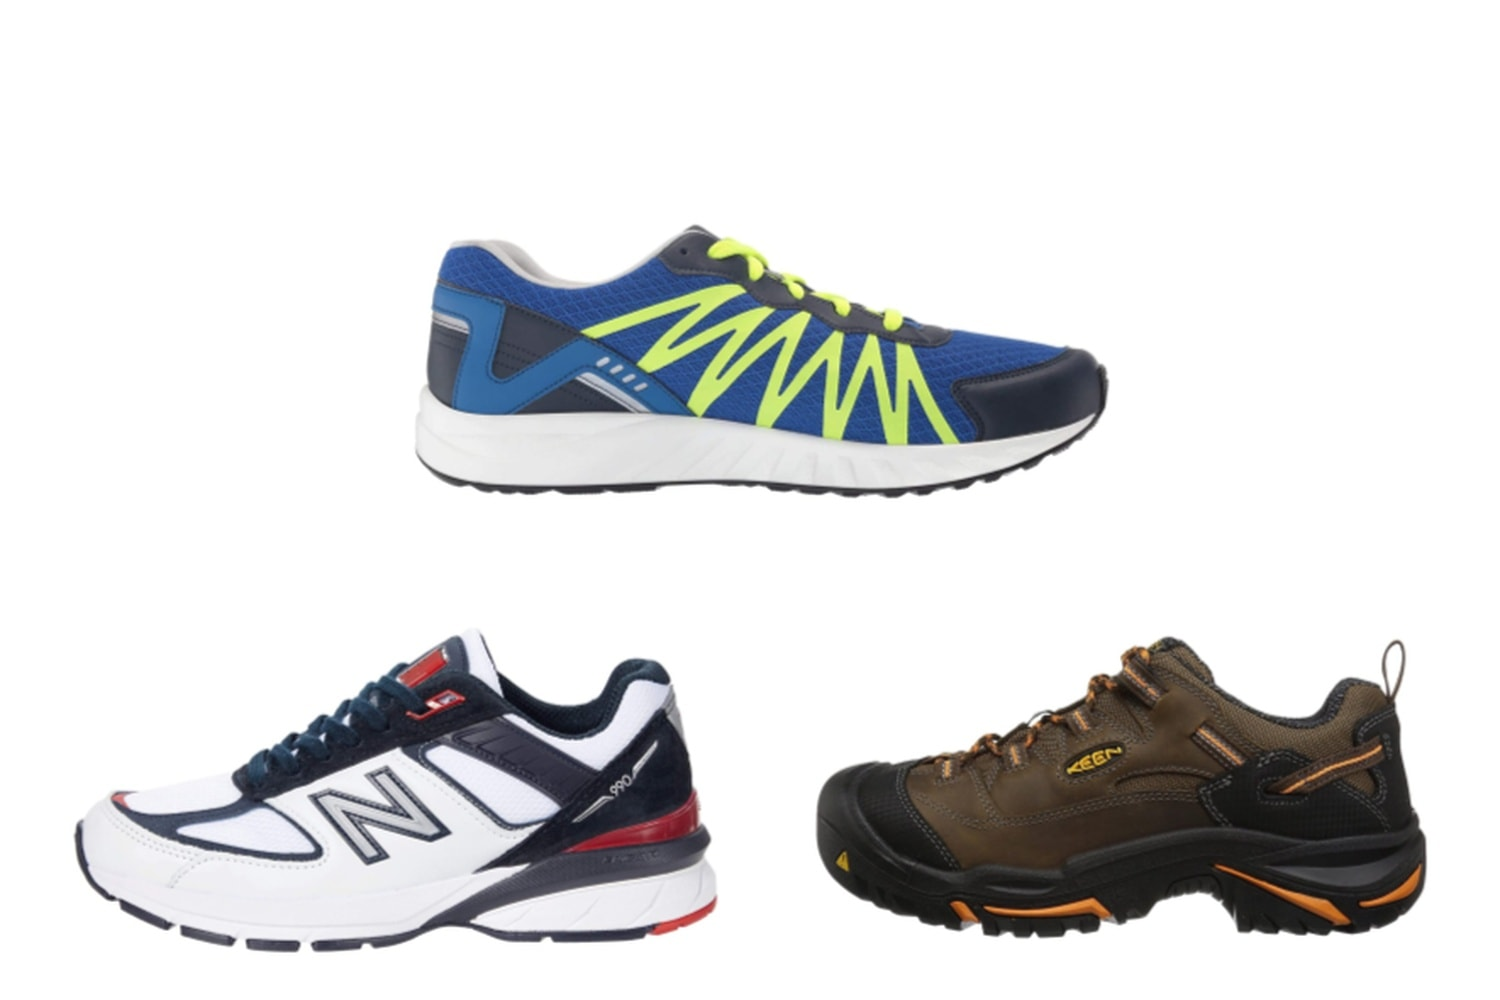 Athletic Running Shoes made in the USA